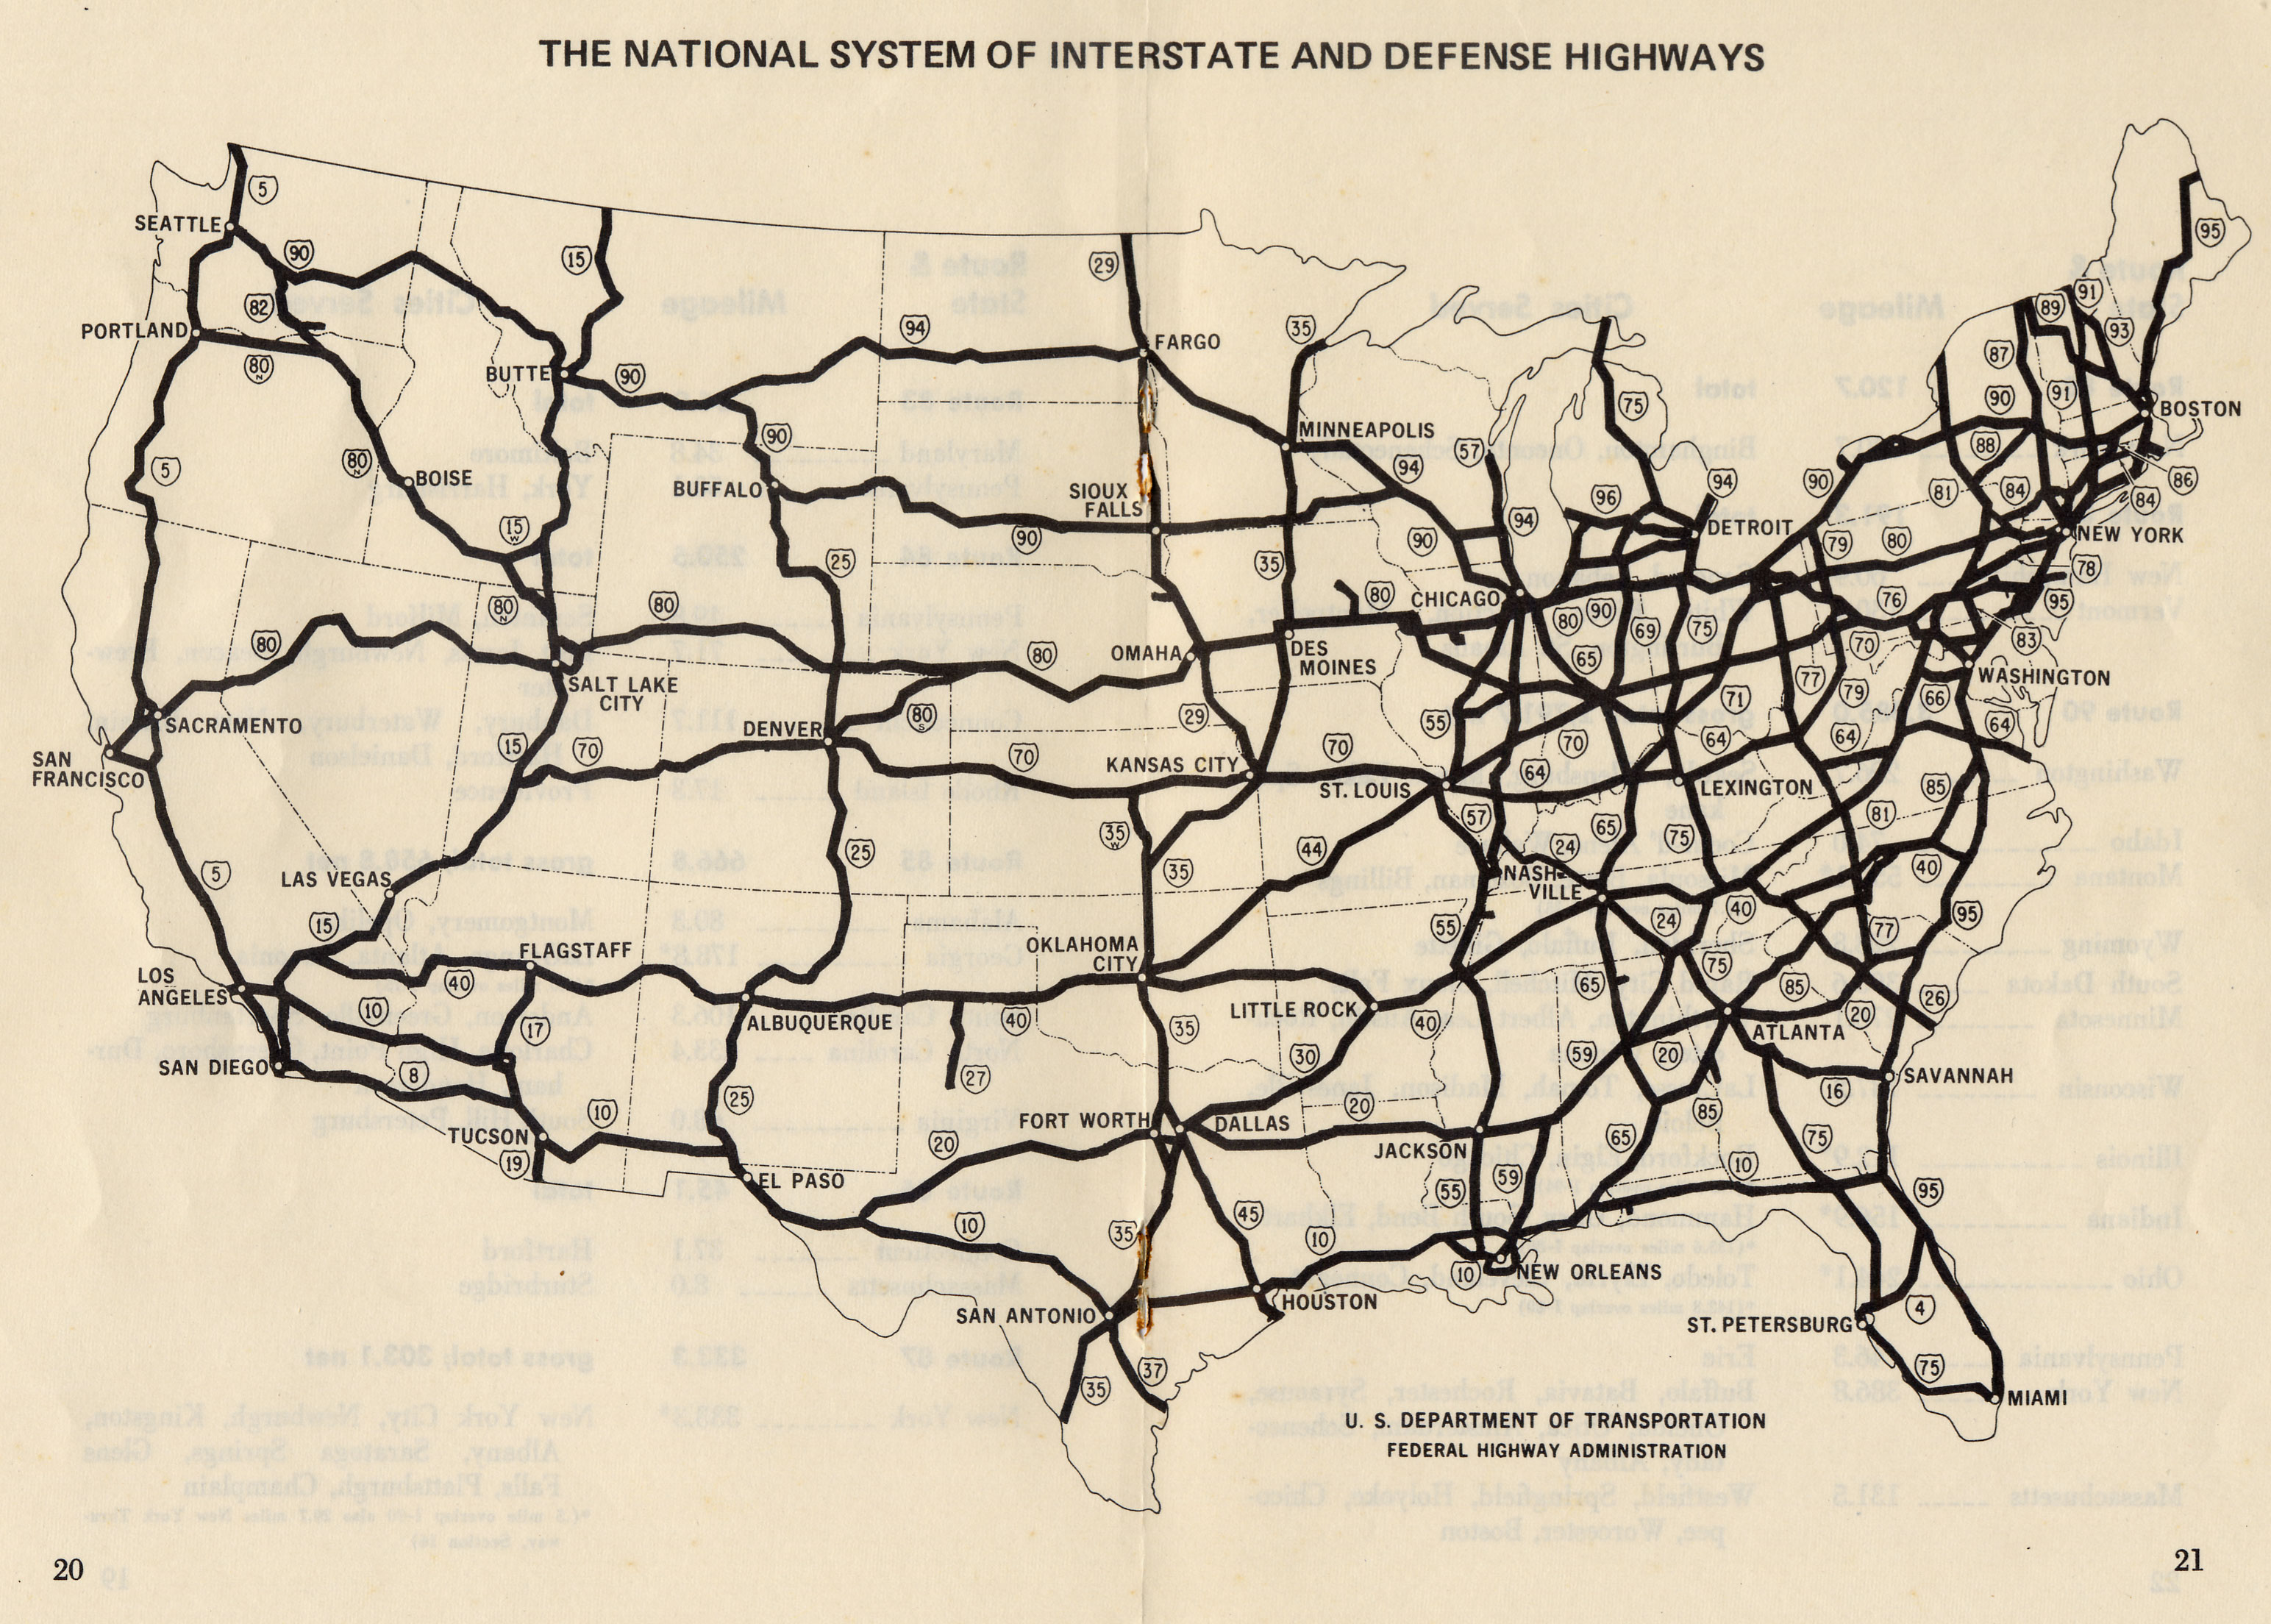 Interstate Road Map Of The United States.1940 United States Highway Map